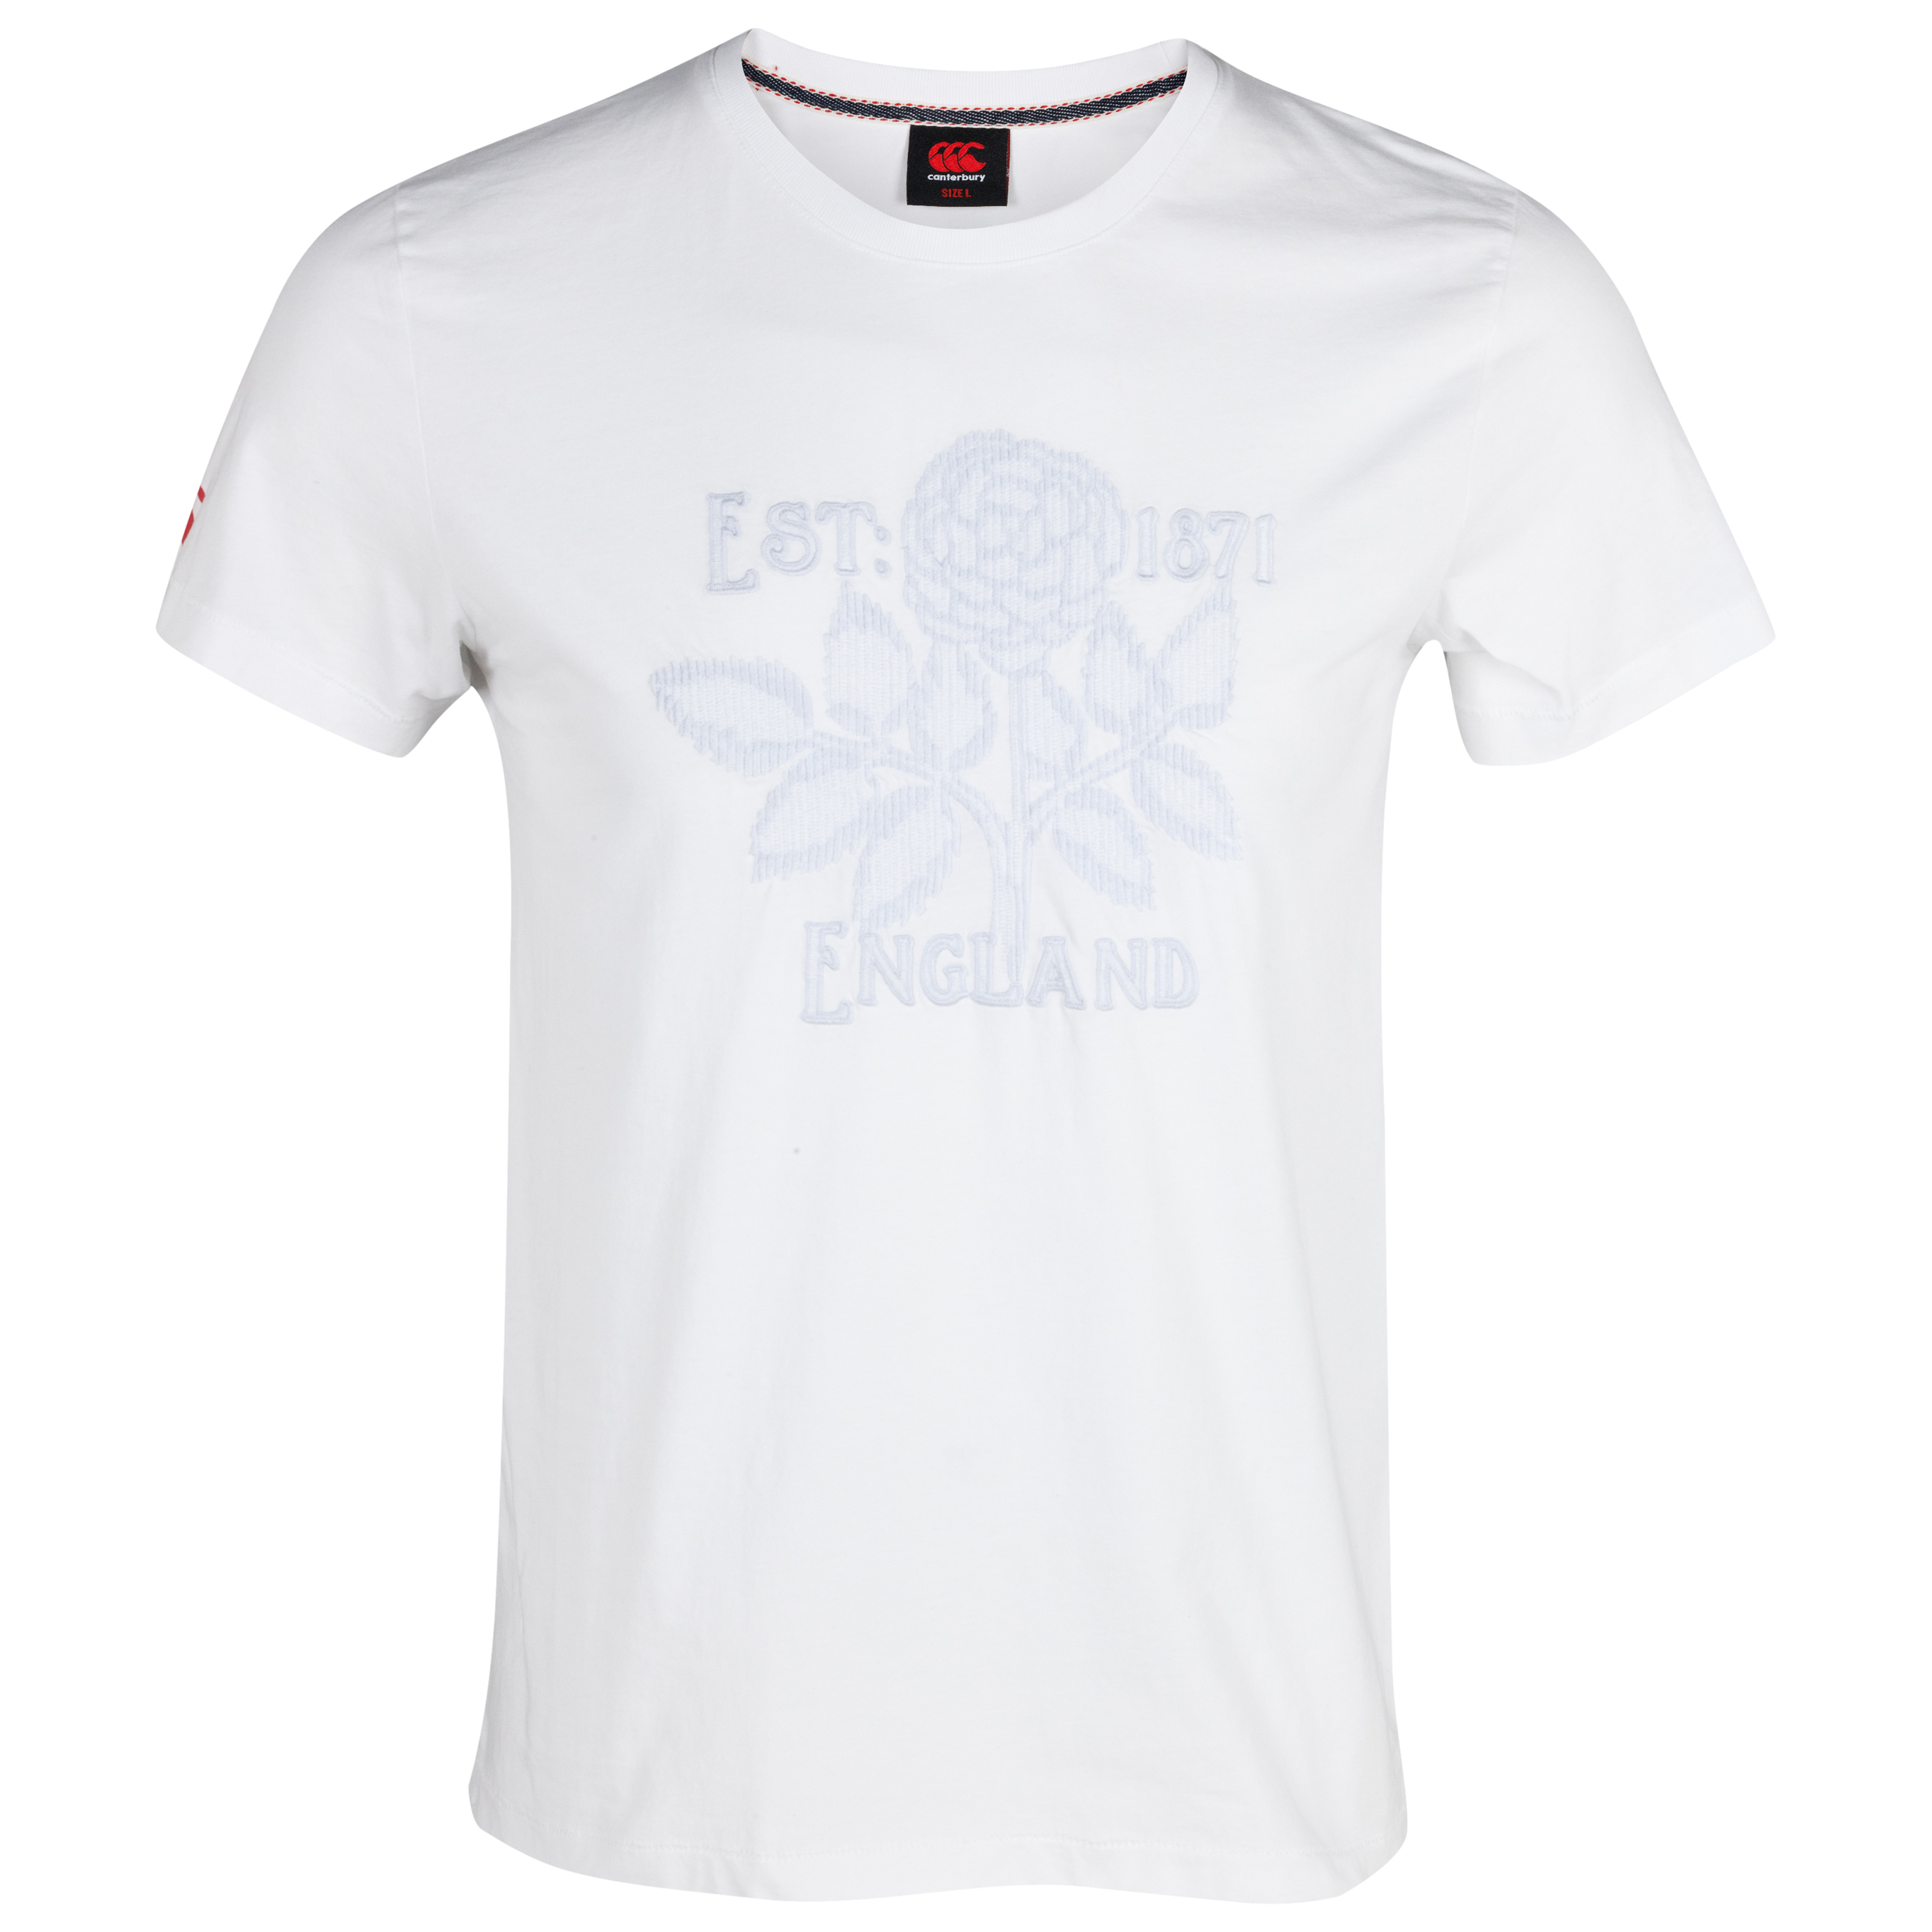 England Lifestyle Graphic Rose T-Shirt